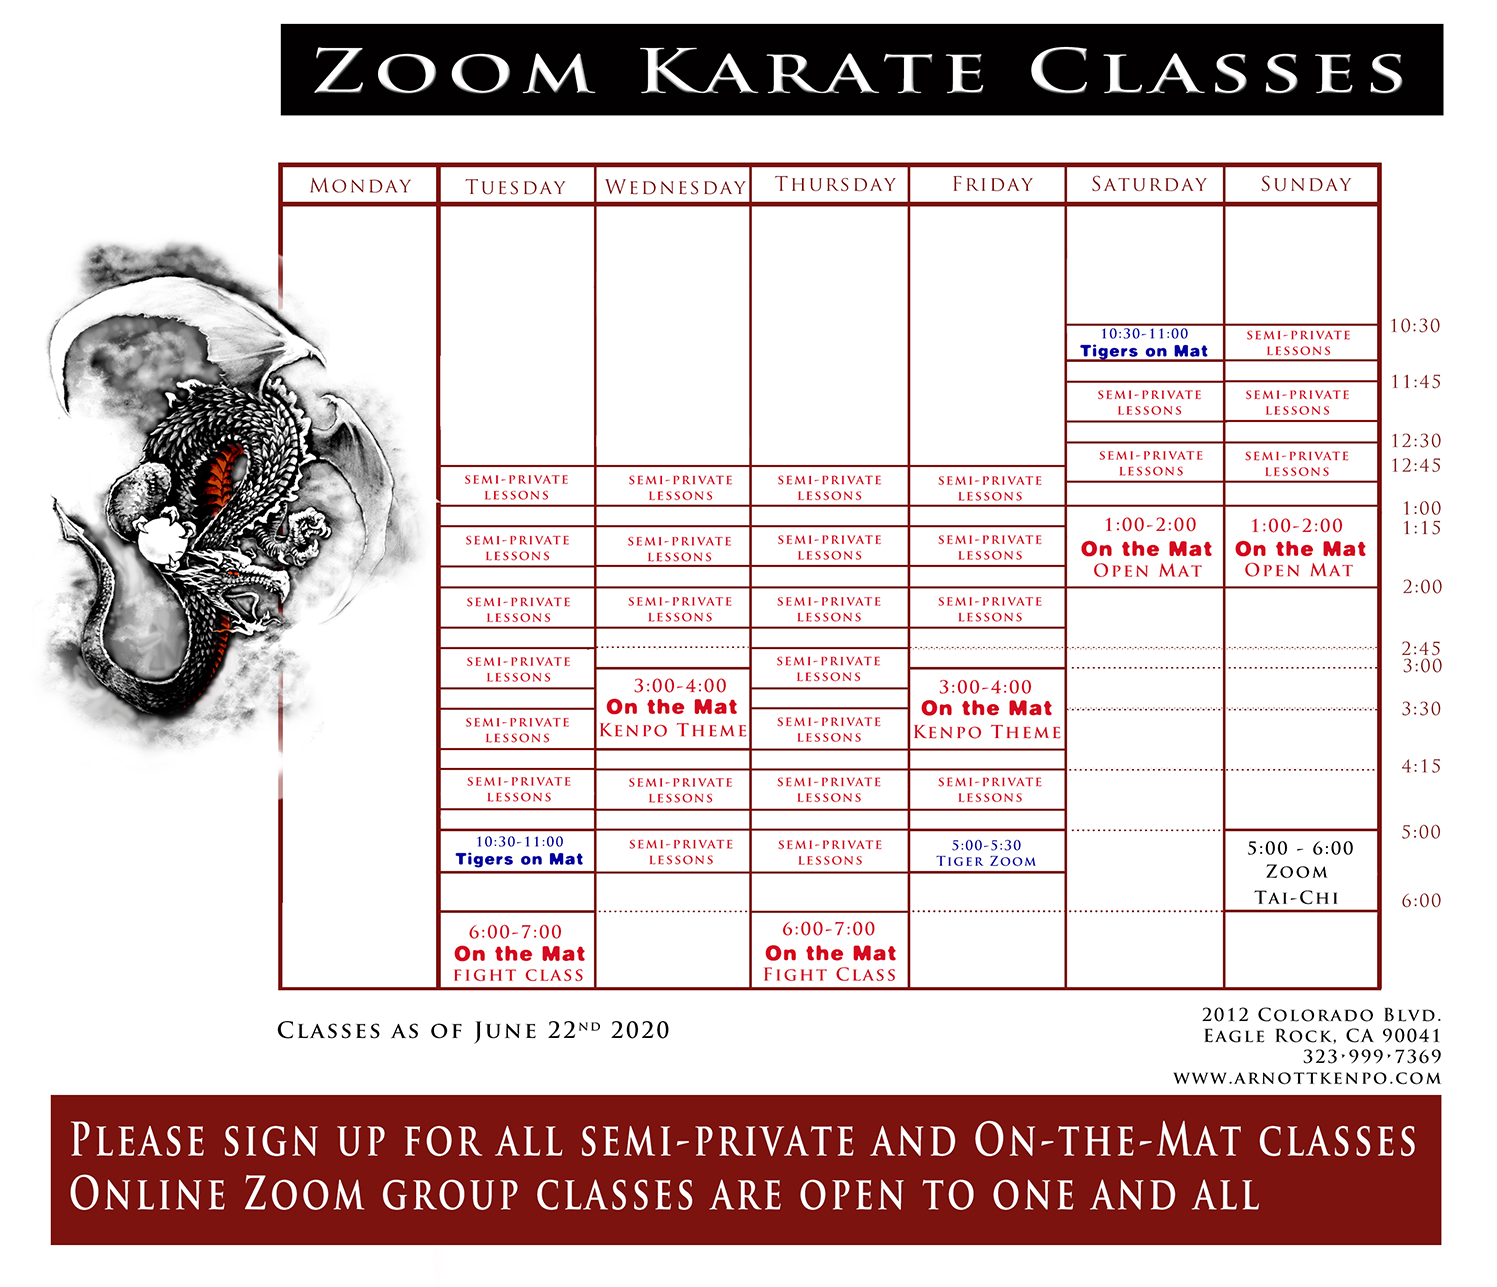 Schedule of Classes and Private Lessons